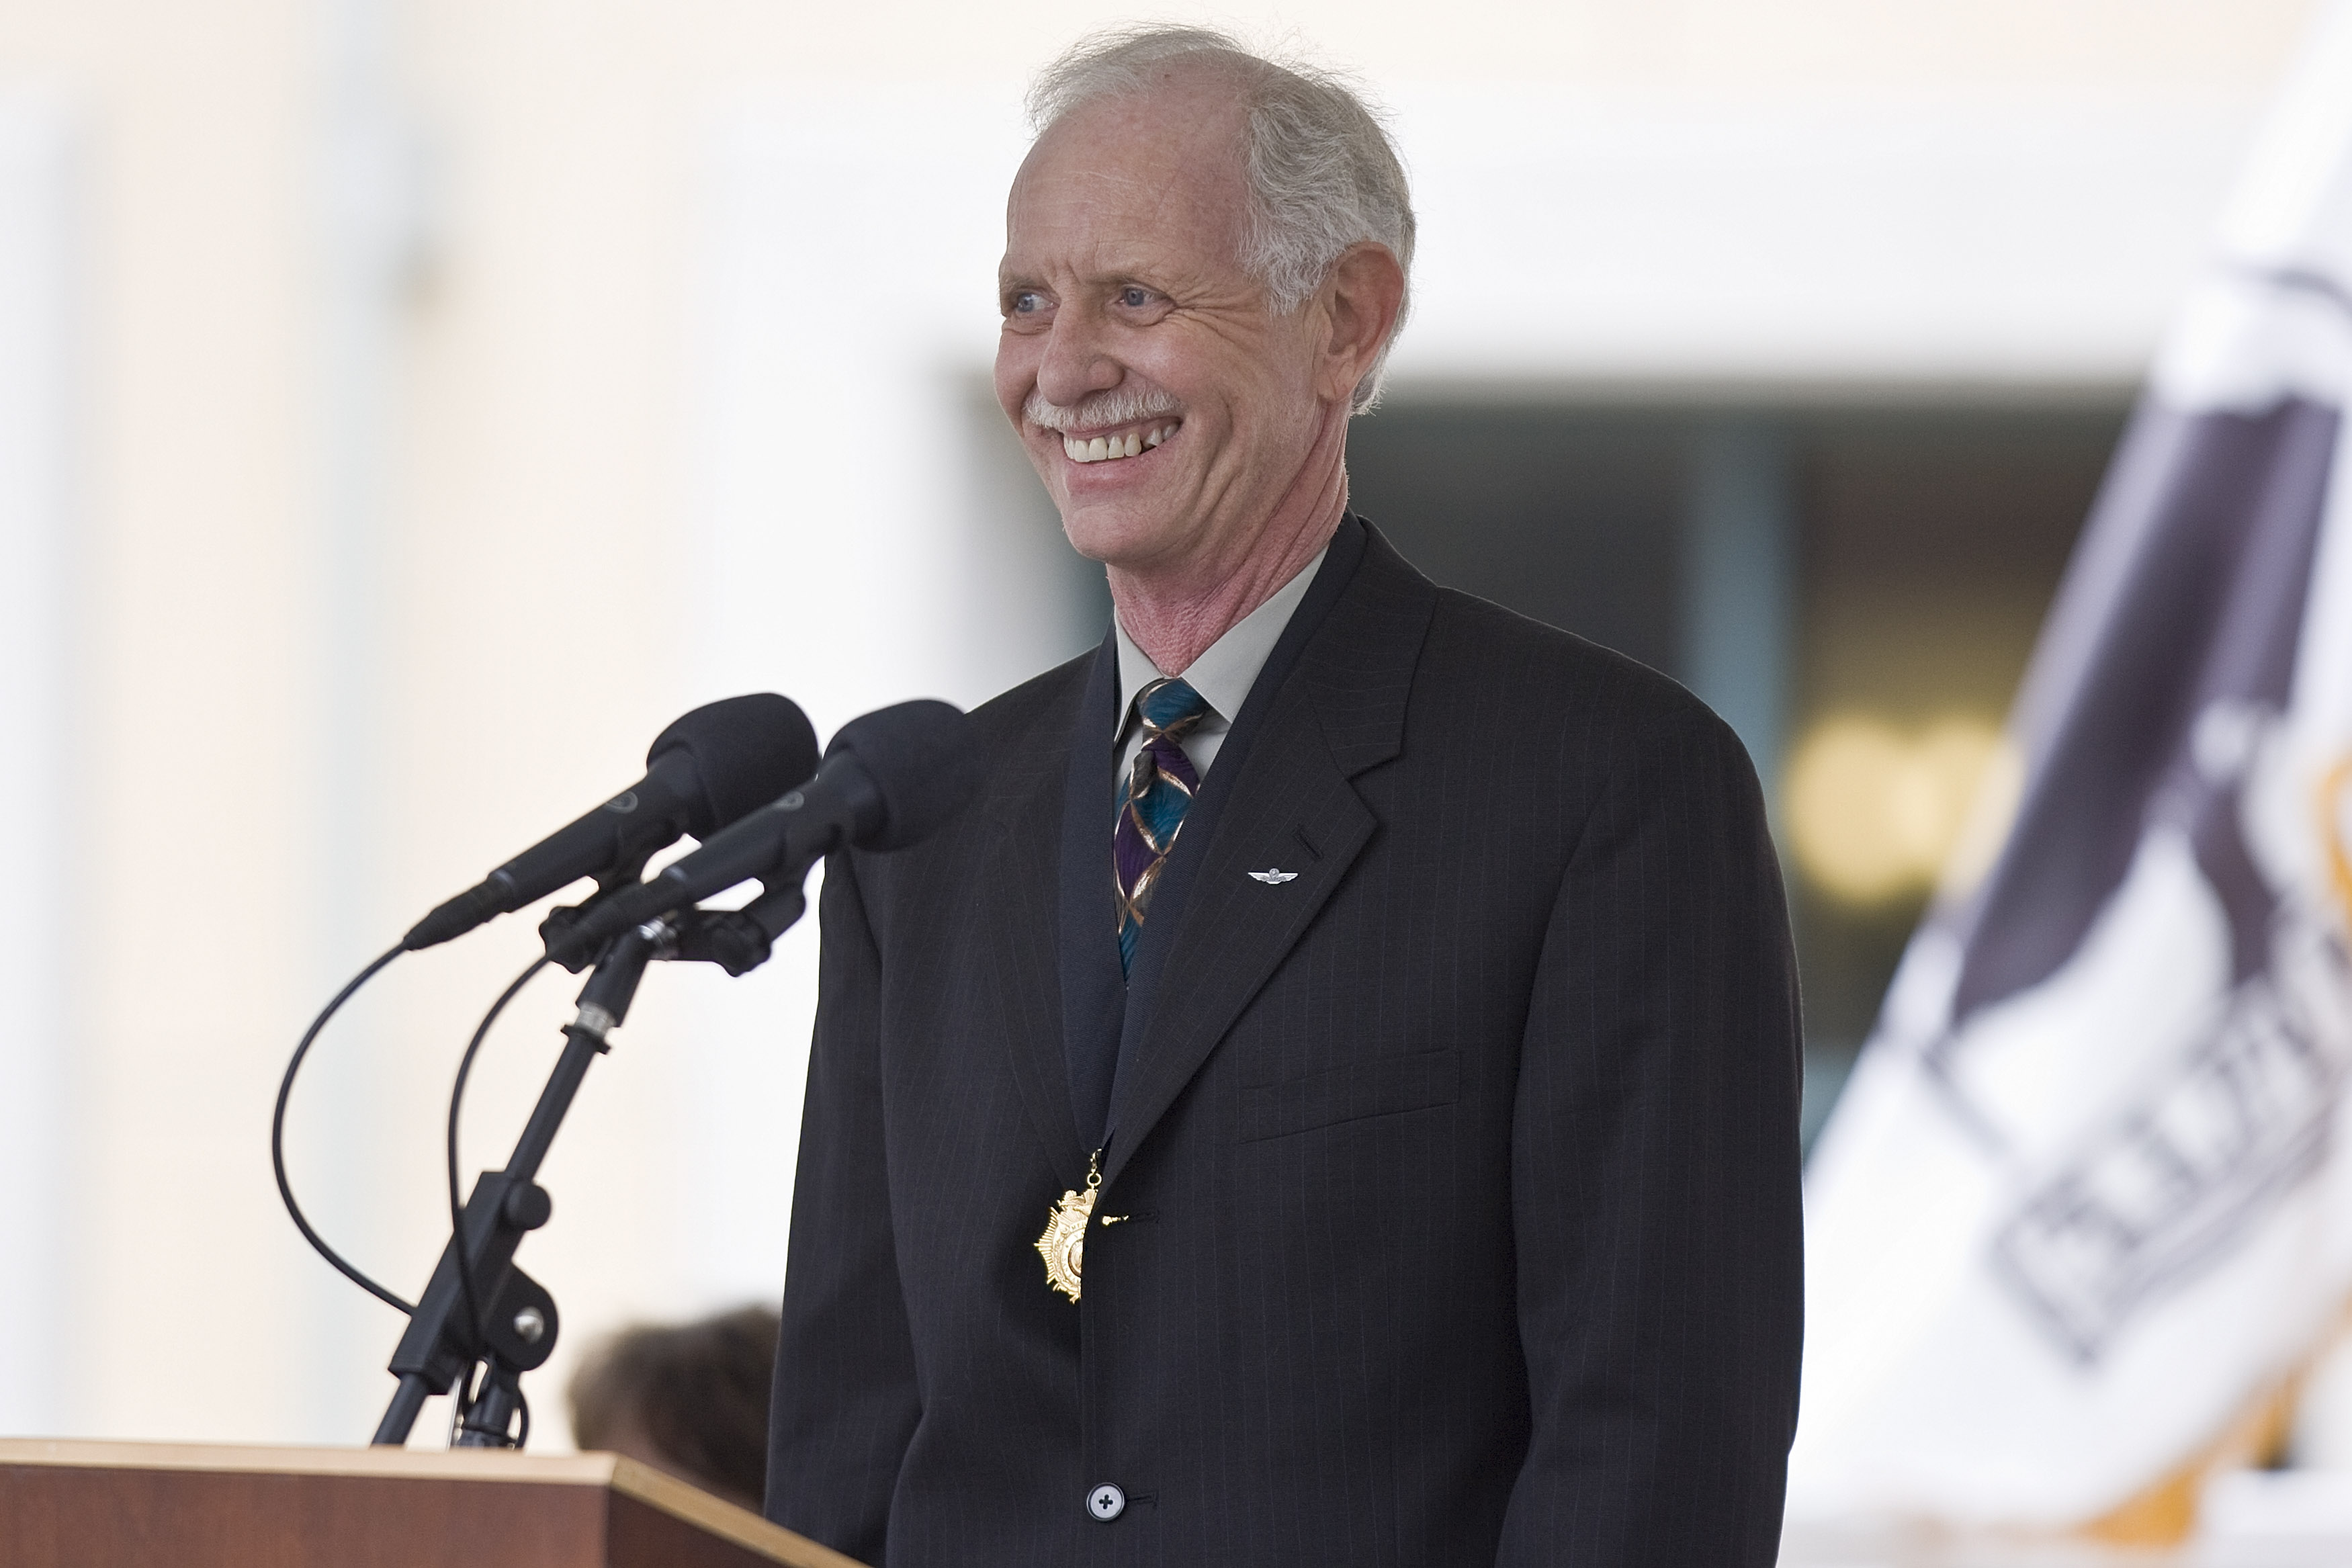 US Airways pilot Sully Sullenberger speaks at a celebration in his honor Jan. 24, 2009 in Danville, California. Sullenberger was honored for guiding his crippled airliner to safe landing in the Hudson River, saving the lives of all 155 on board on Jan. 15, 2009.  (Photo by David Paul Morris/Getty Images)